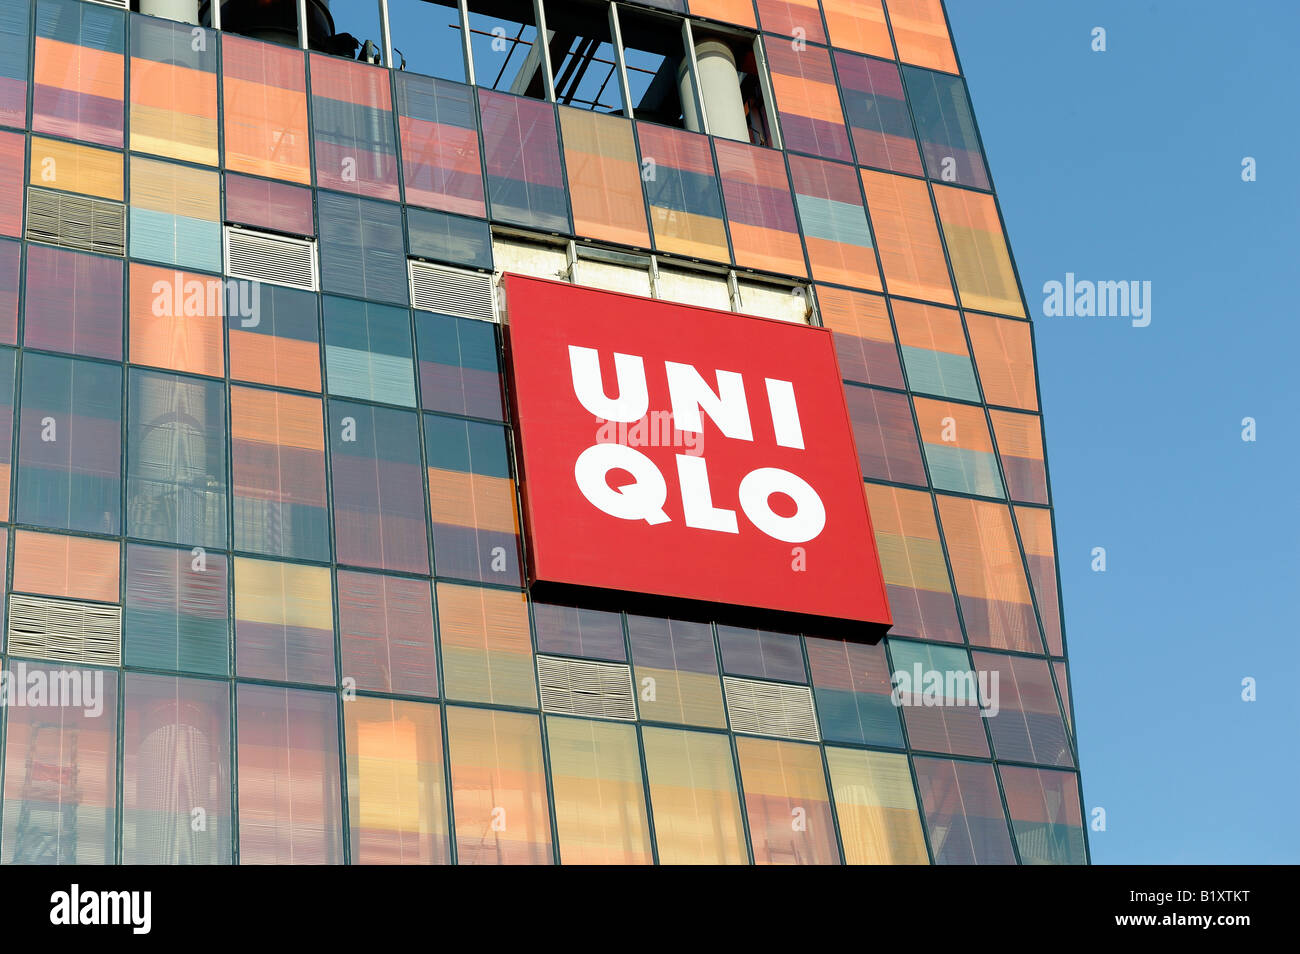 Uni Qlo store in Beijing, China. 06-Jul-2008 - Stock Image